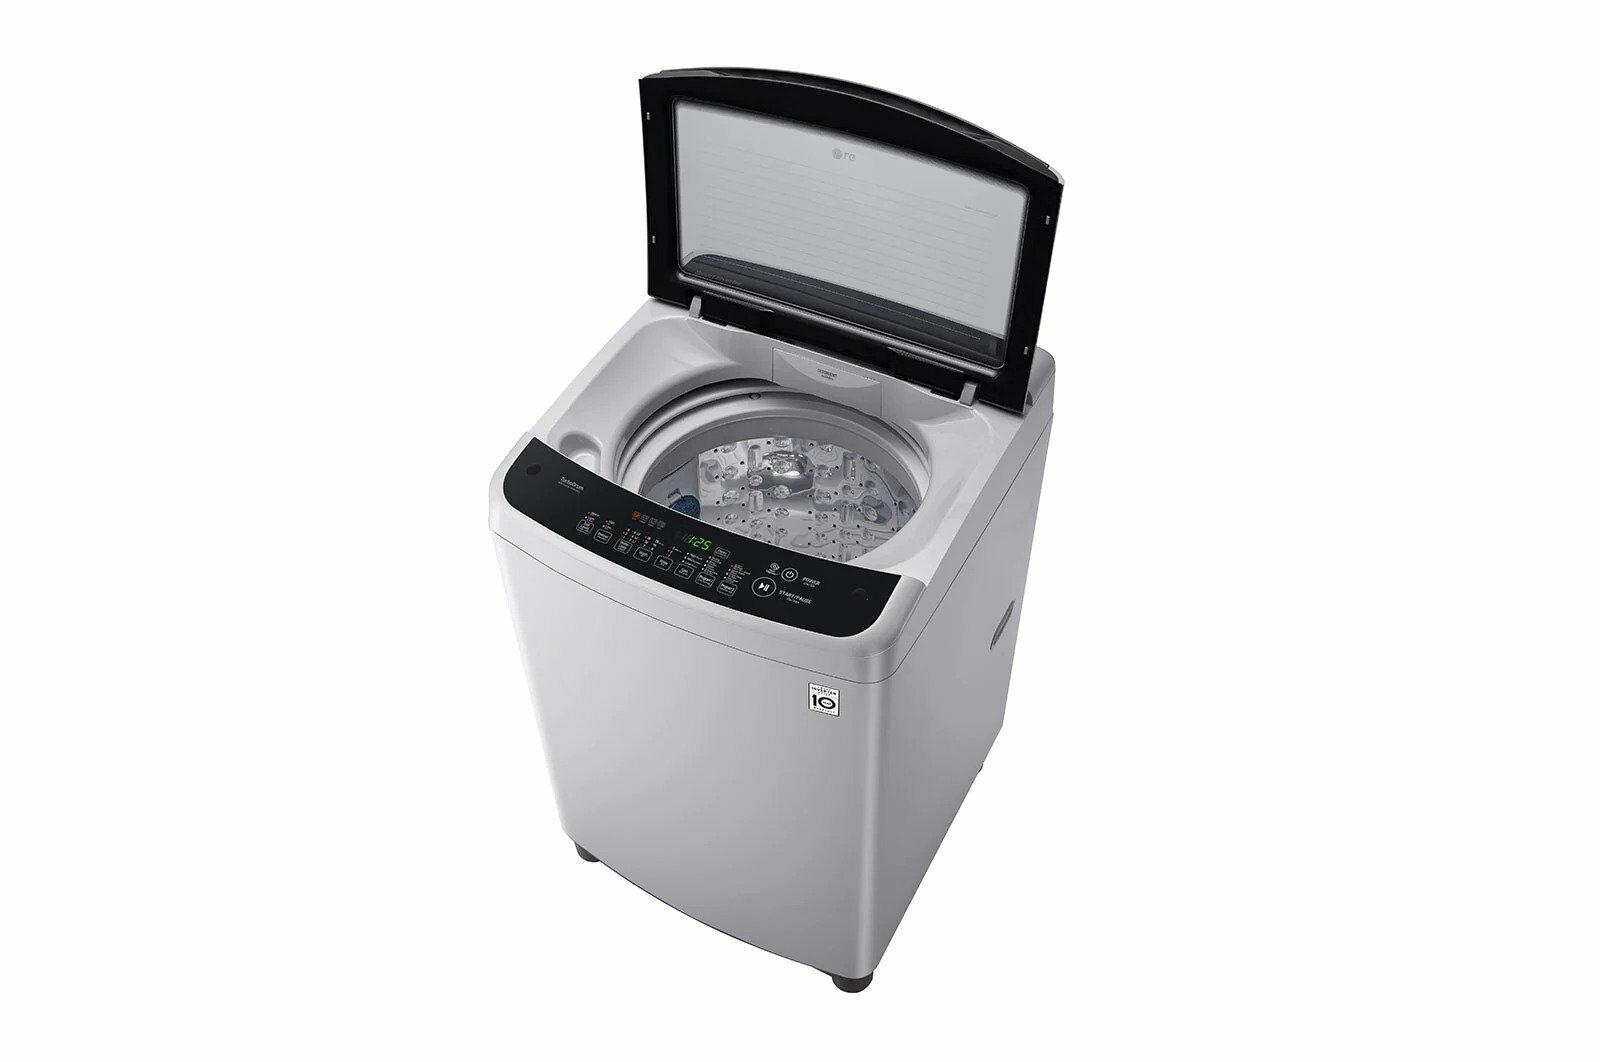 LG T2516VS2M - one of the best washing machines